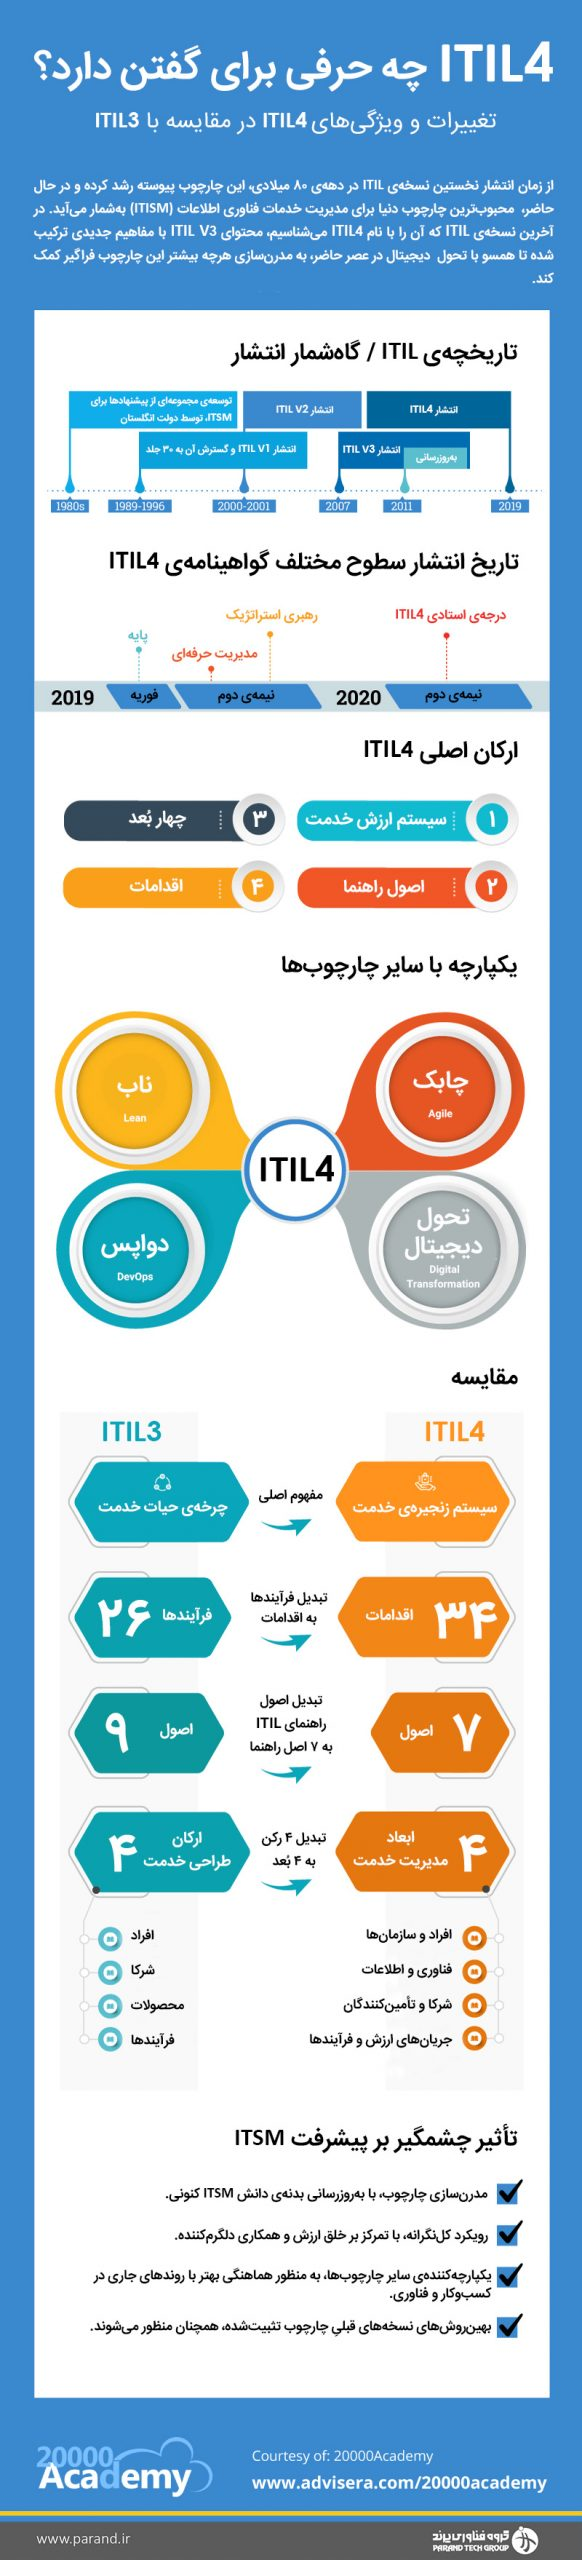 ITIL 4 Infographic